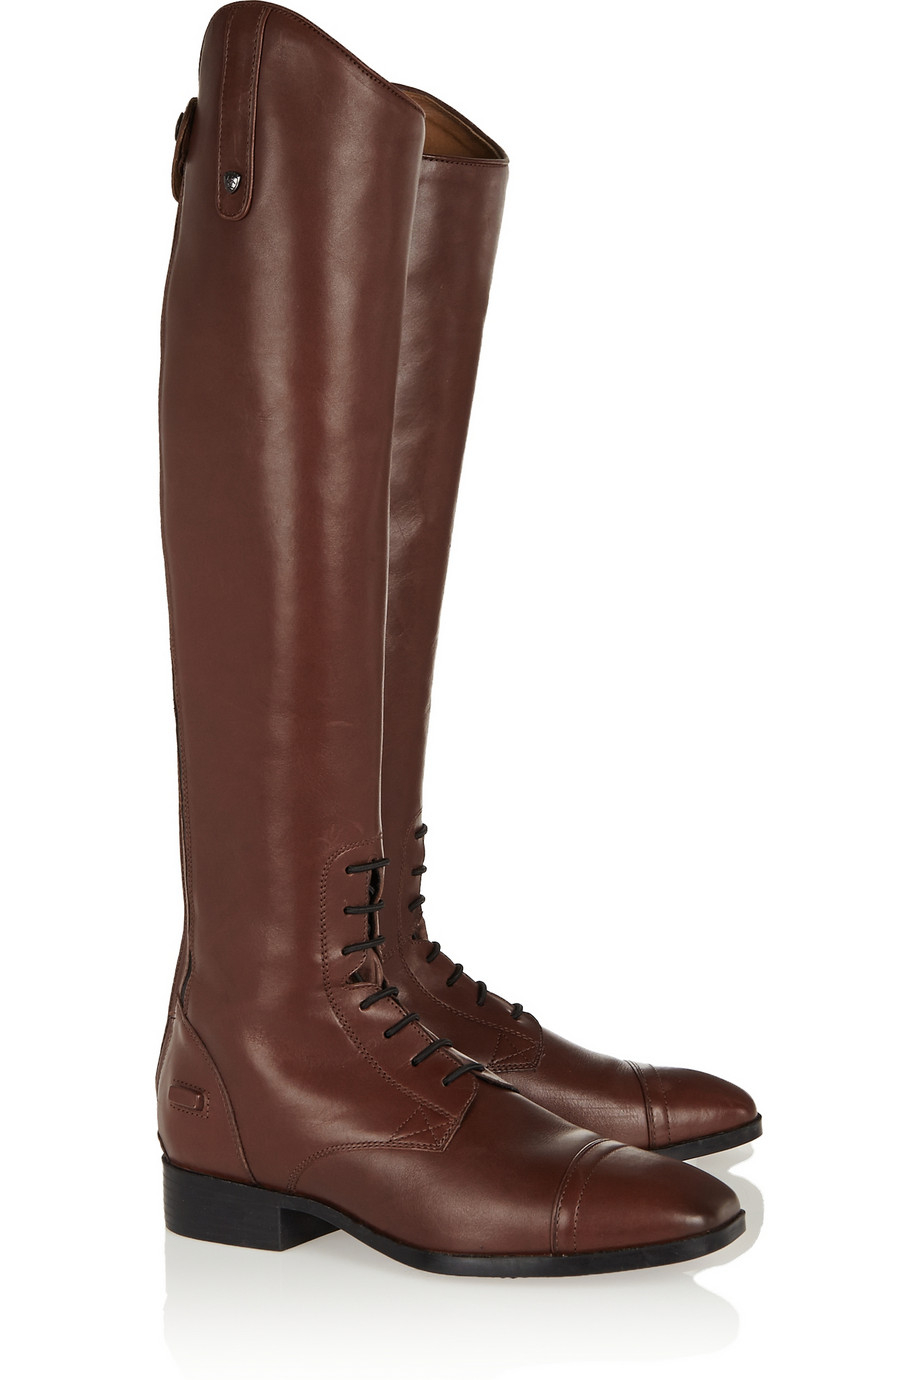 Ariat Challenge Contour Leather Slim-Fit Riding Boots in ...